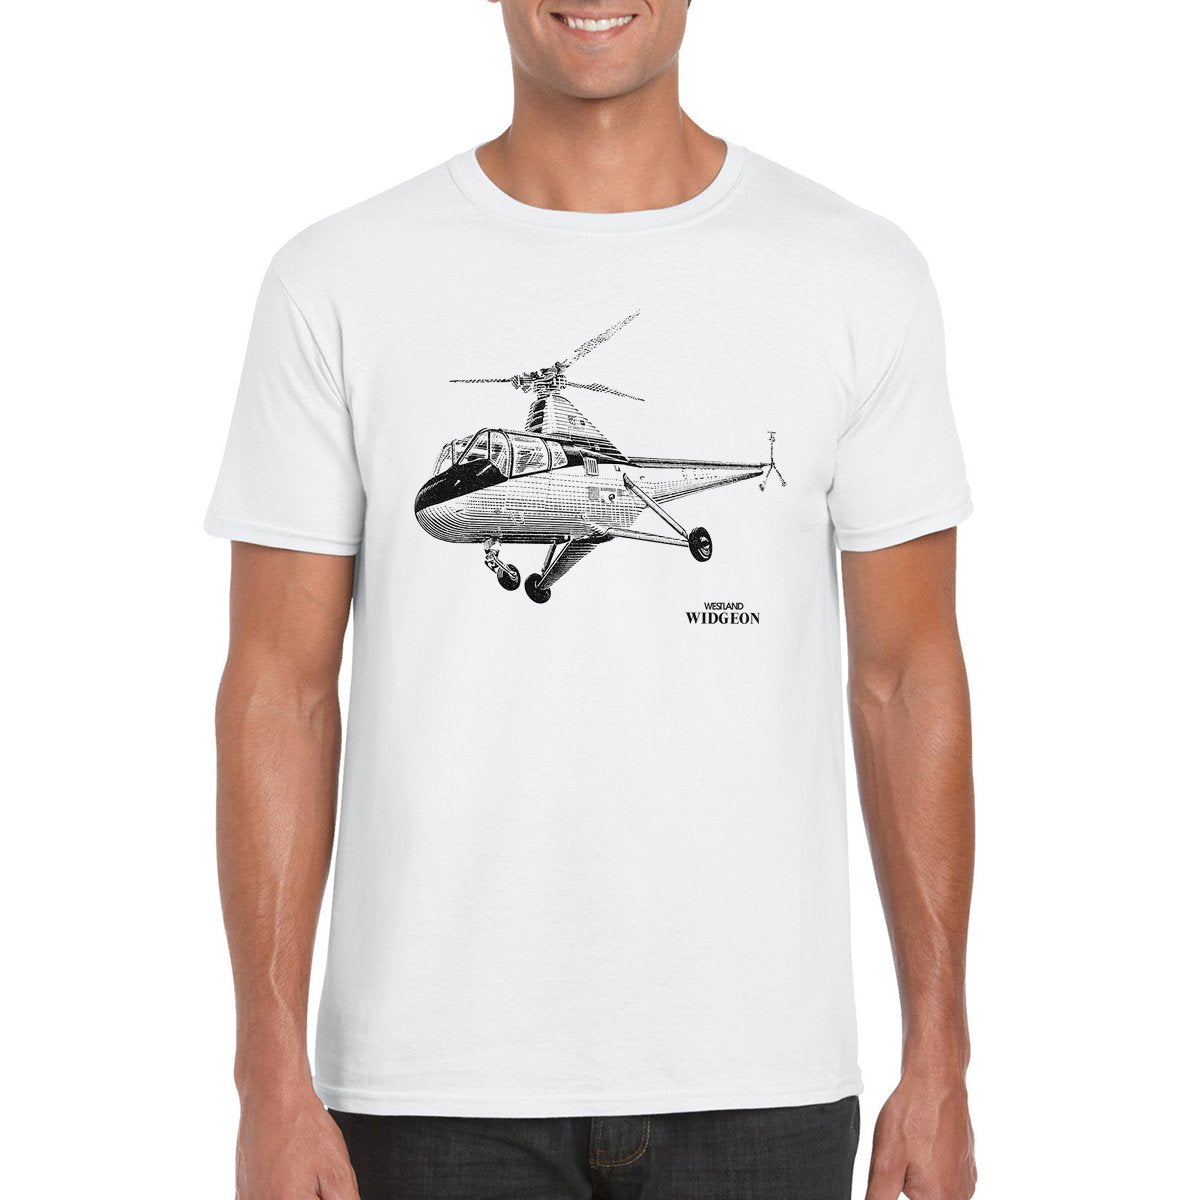 WESTLAND WIDGEON Helicopter T-Shirt